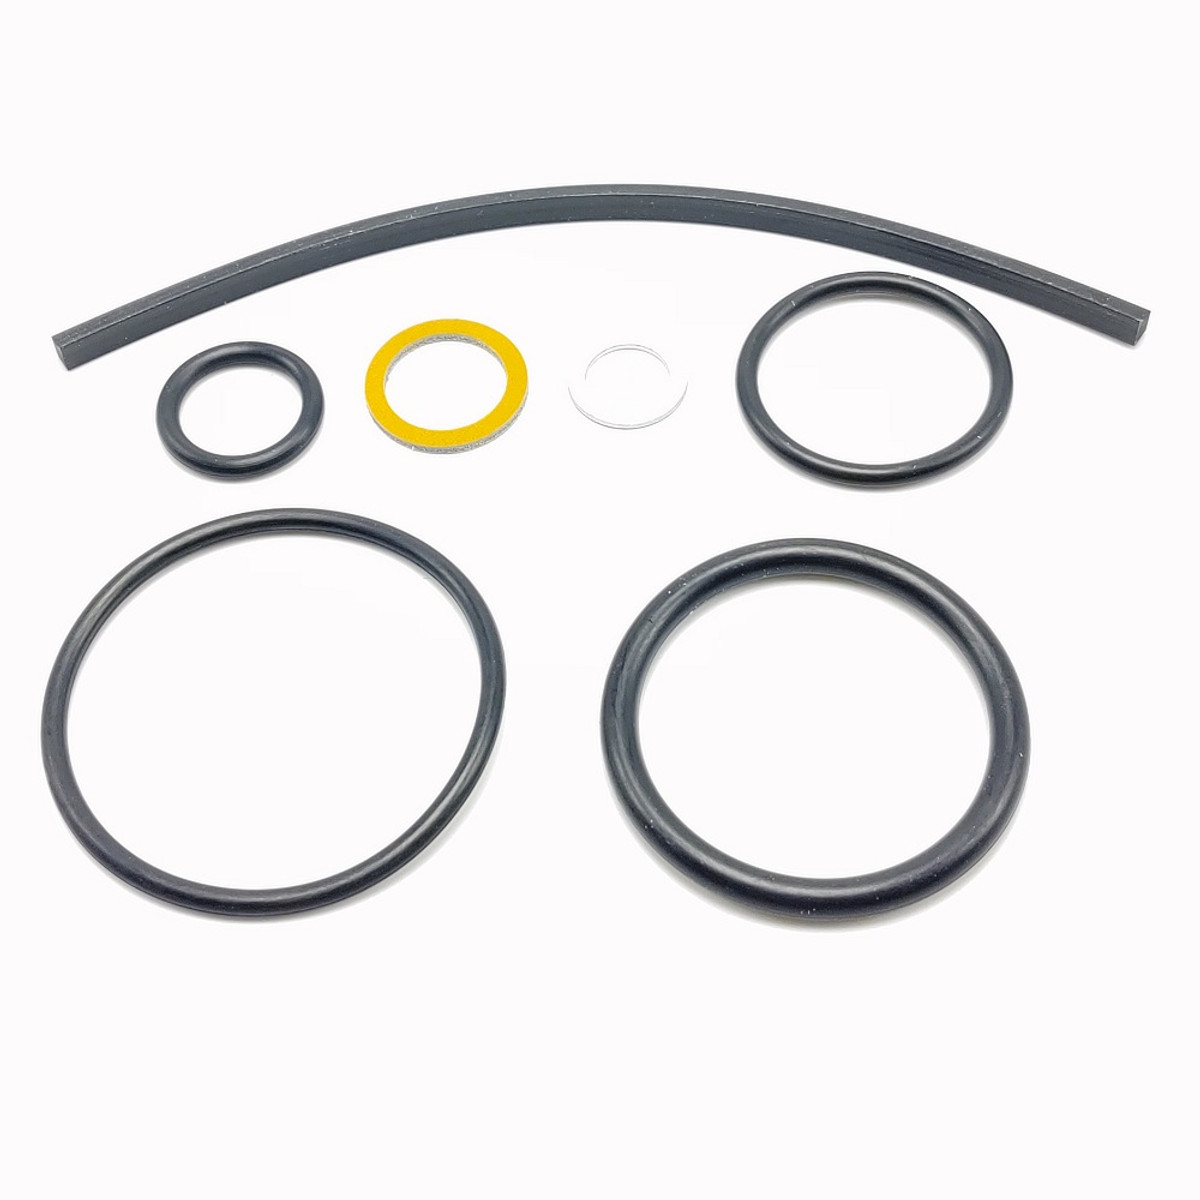 Nose and Main Strut Seal Kit,  Piper PA-23 Series,  104-TP23S-1 previously 104-PPPA23MSSK